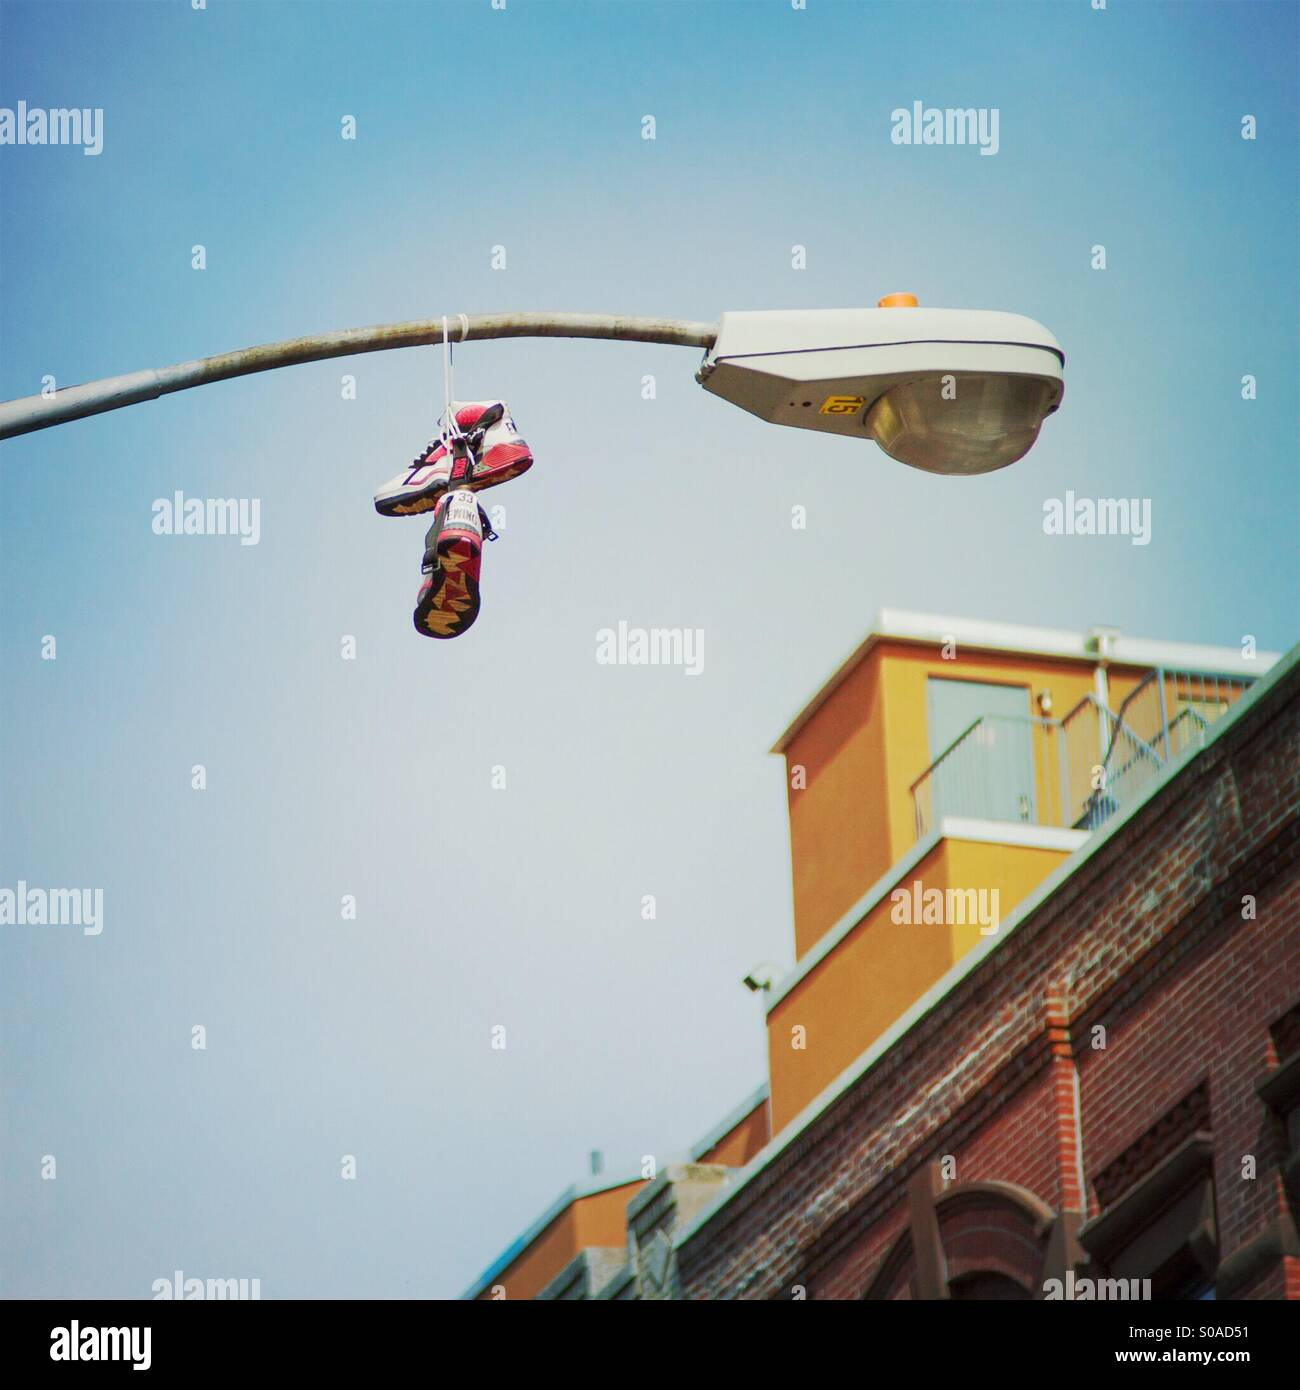 Sneakers hanging from lamp post in Harlem, New York City - Stock Image